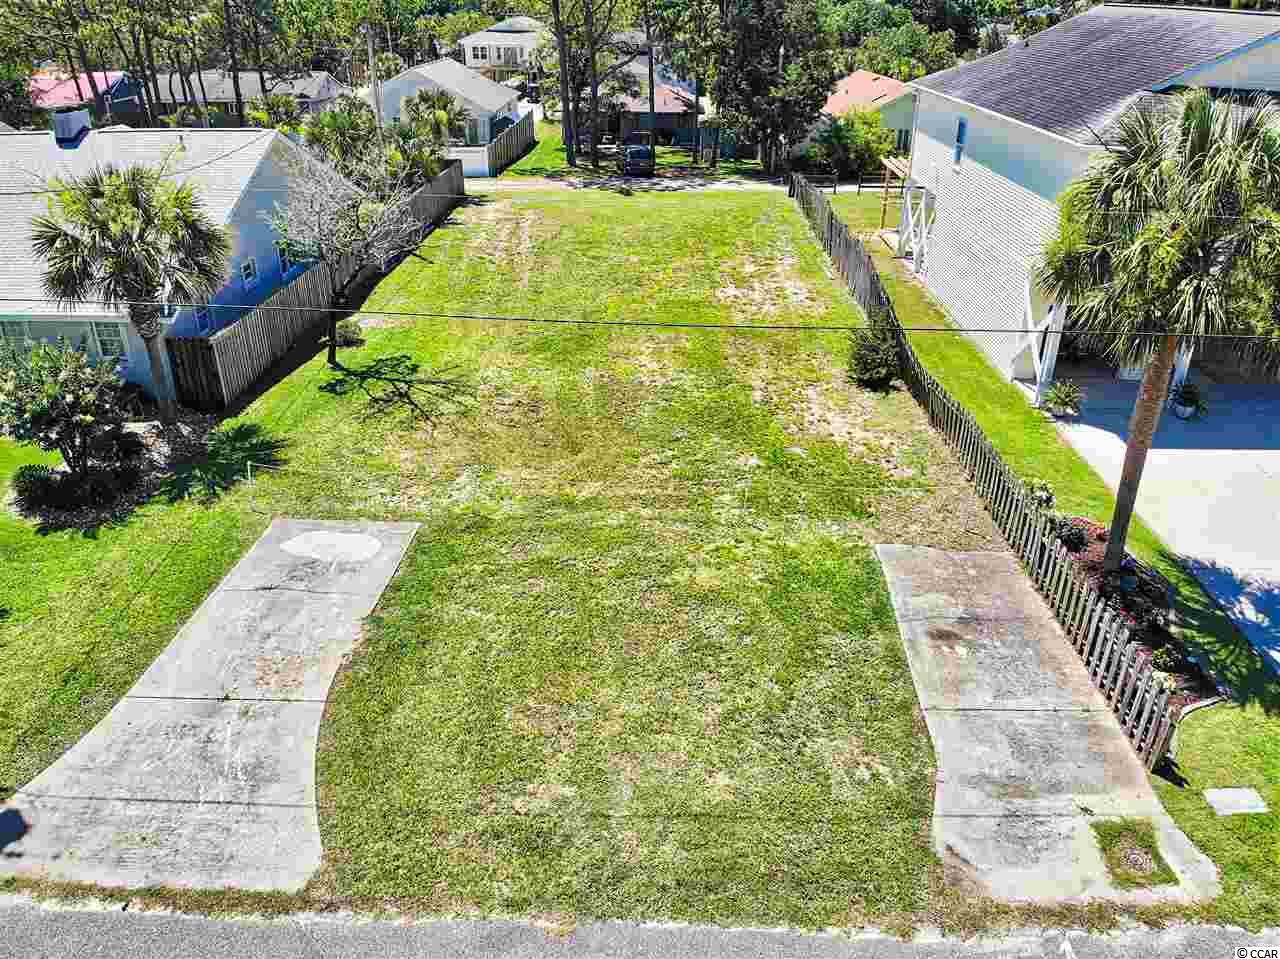 LOCATION! LOCATION! LOCATION! Great place to build your new house at the beach!!! One of the most desirable neighborhoods, just a couple of blocks away from the ocean. Only minutes away from all the attractions that North Myrtle Beach has to offer! Has a water line that has been tapped and access from both side of the lot for your convenience. Rare find, ready to build!!!No HOA.